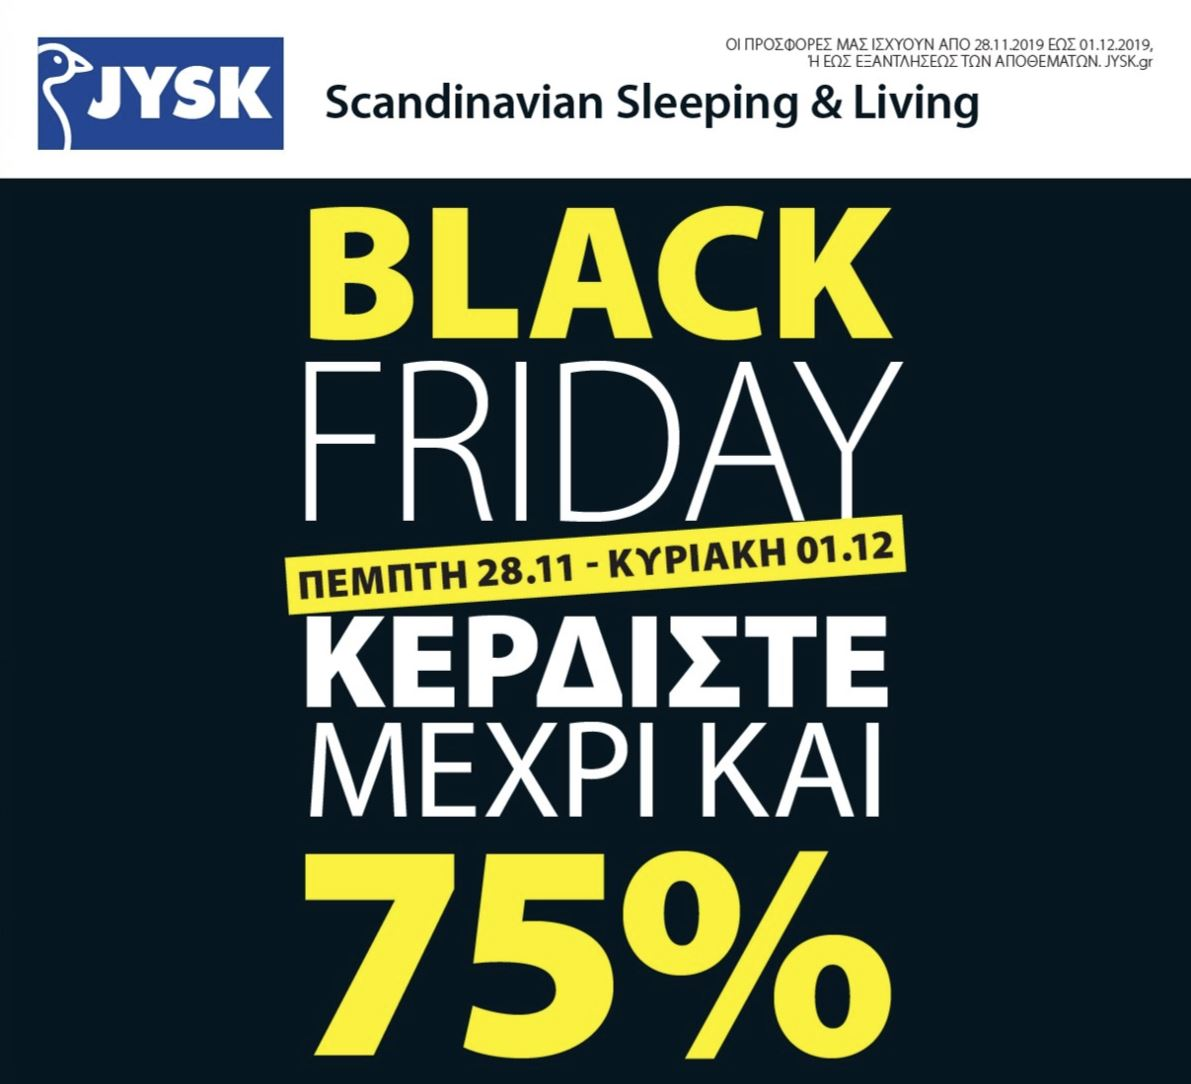 jysk-black-friday-2019-ekptoseis-blackfriday-tzisk-epipla-karekles-grafeio-stromata-krevatia